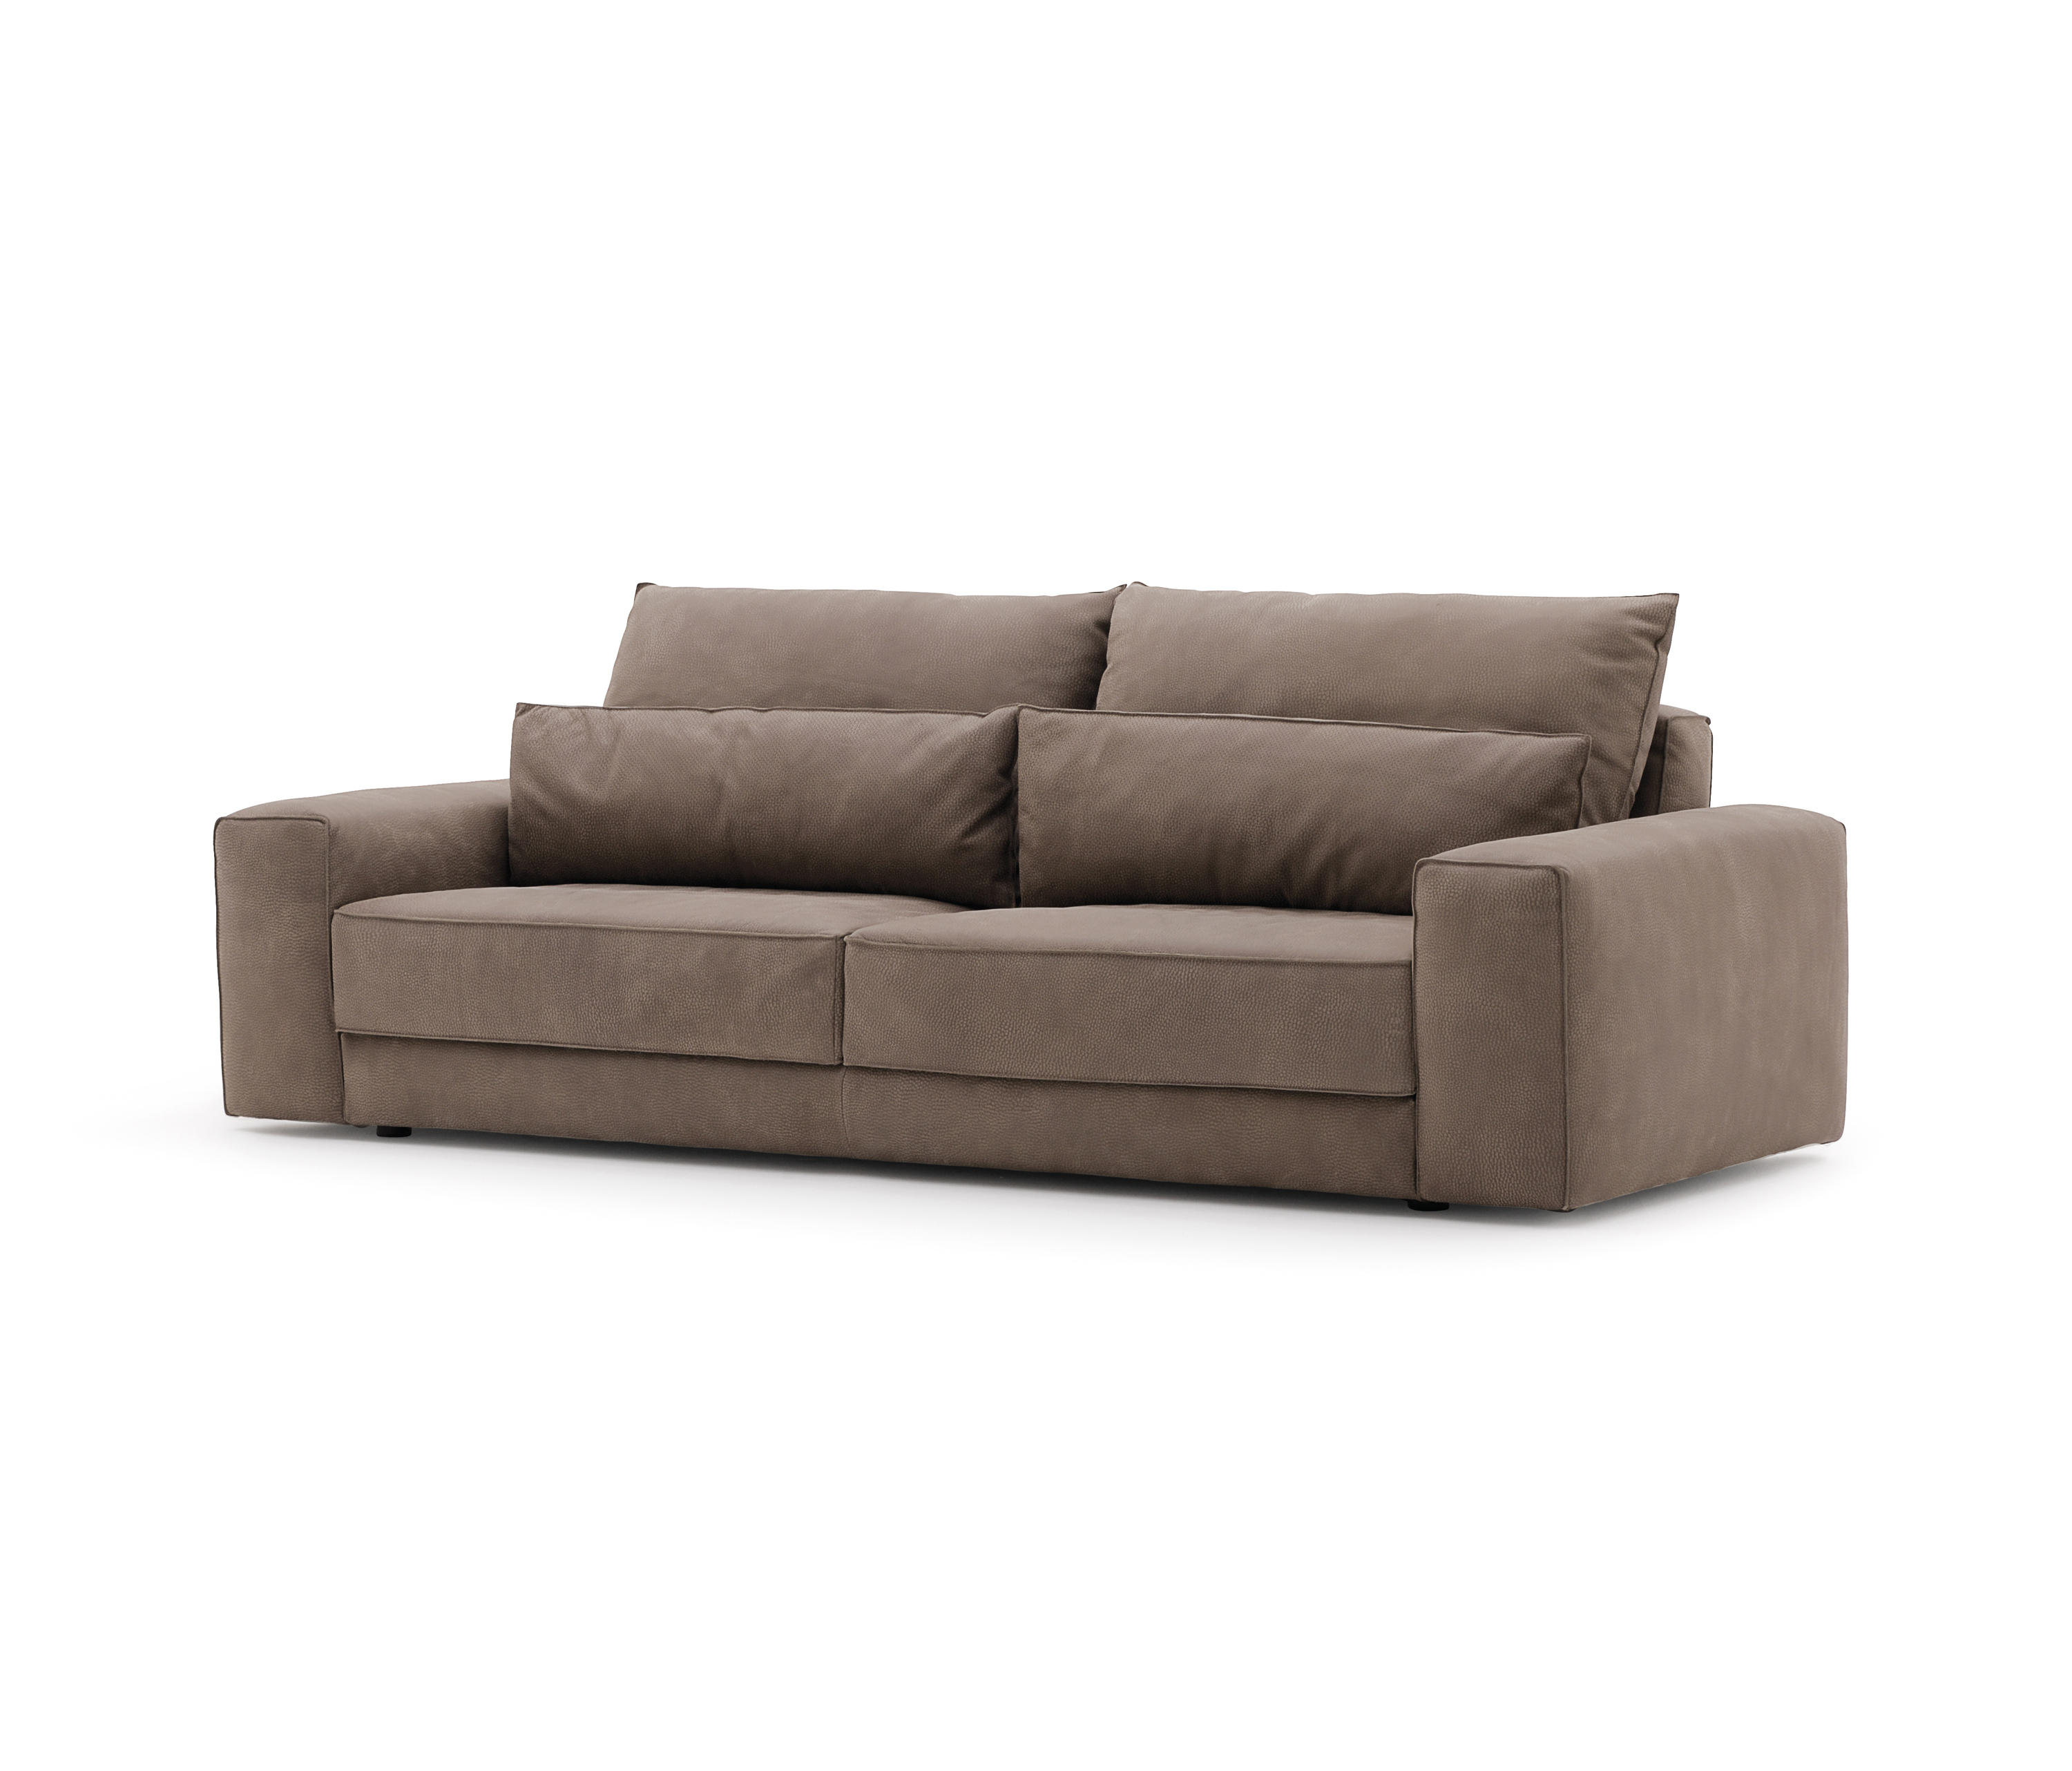 GAME Sofas From Alberta Pacific Furniture Architonic - Sofa game